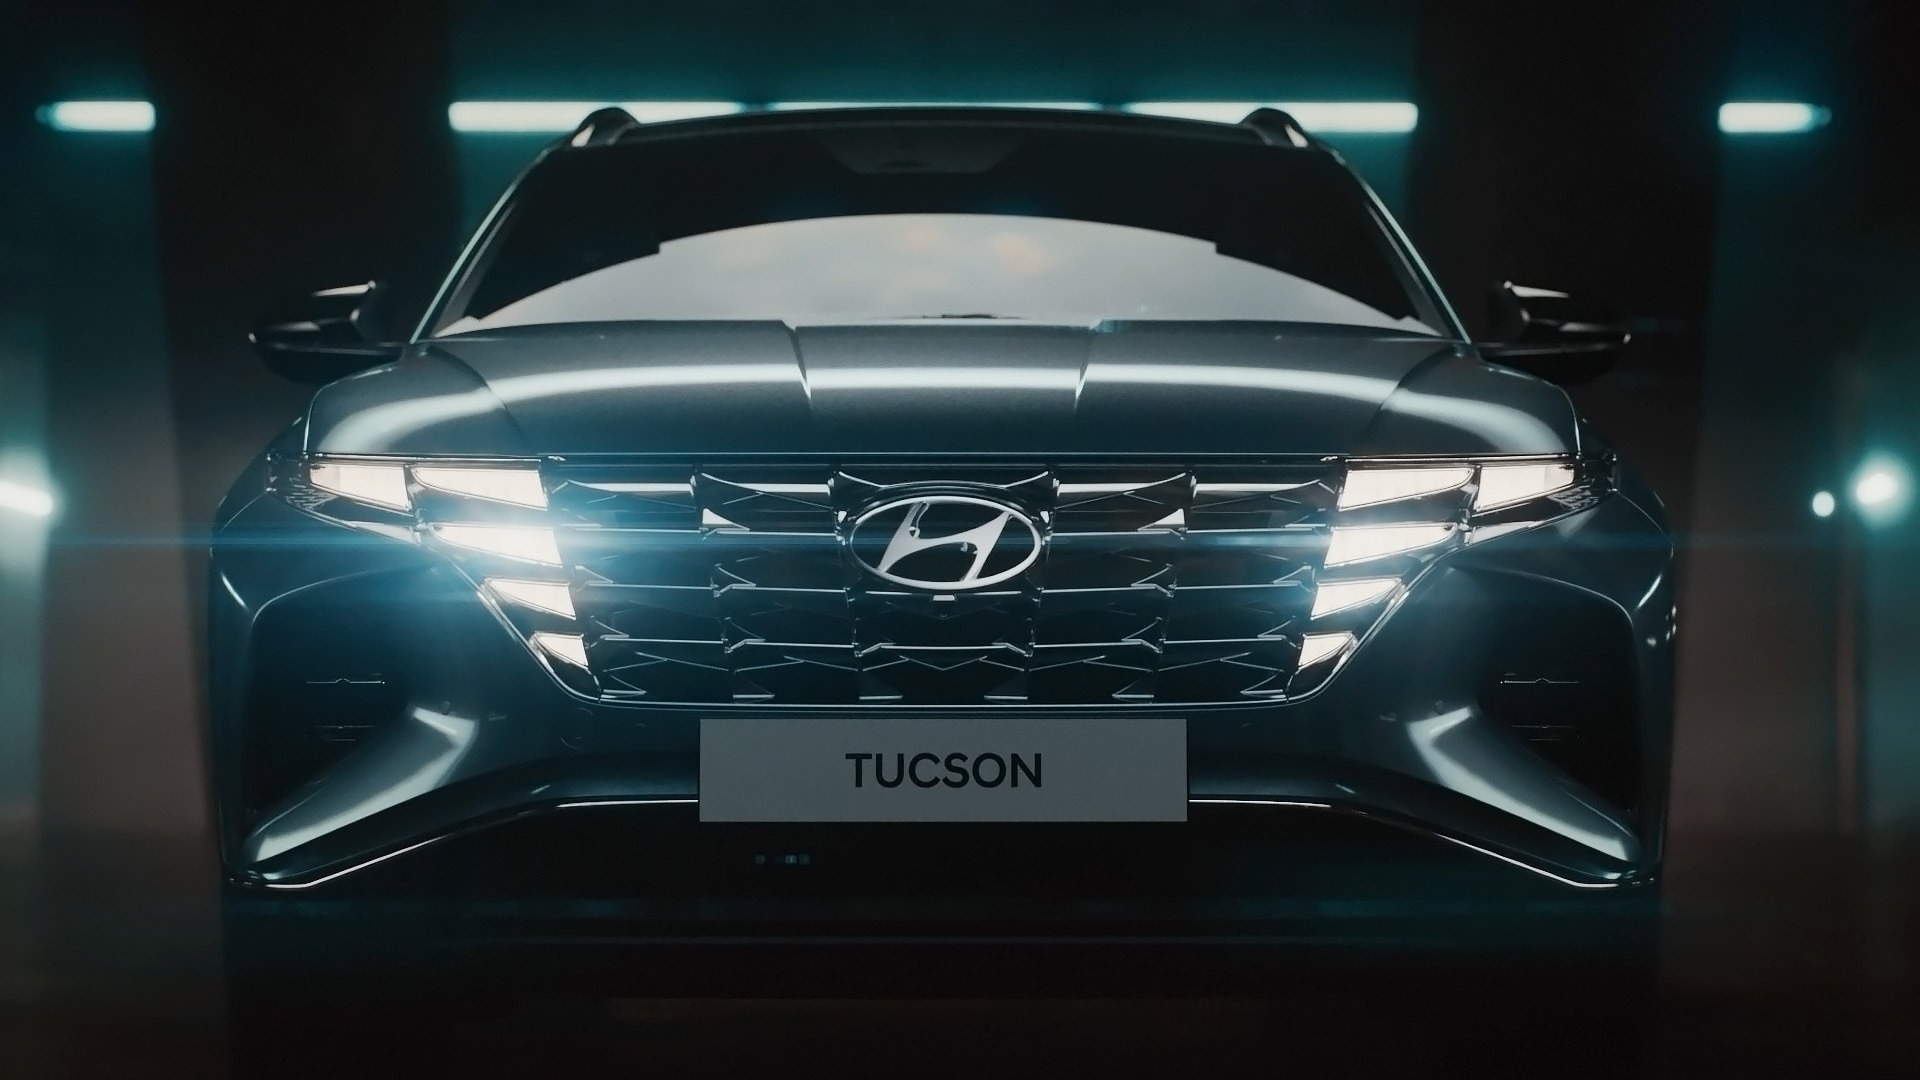 The all-new TUCSON | 채널 현대